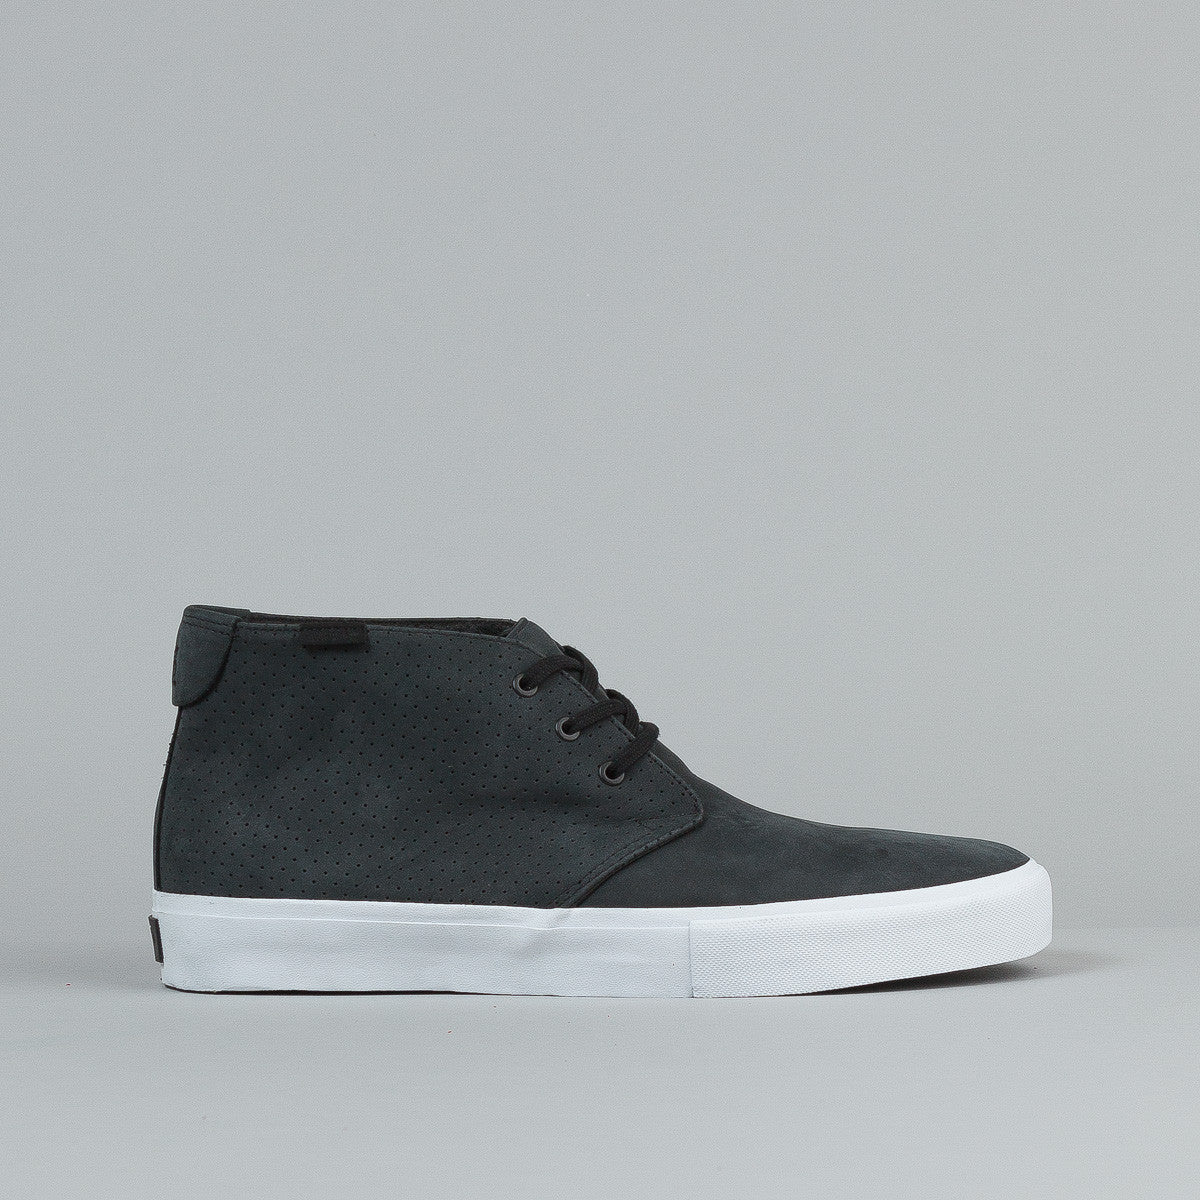 Vans Chukka Decon 'S' Shoes